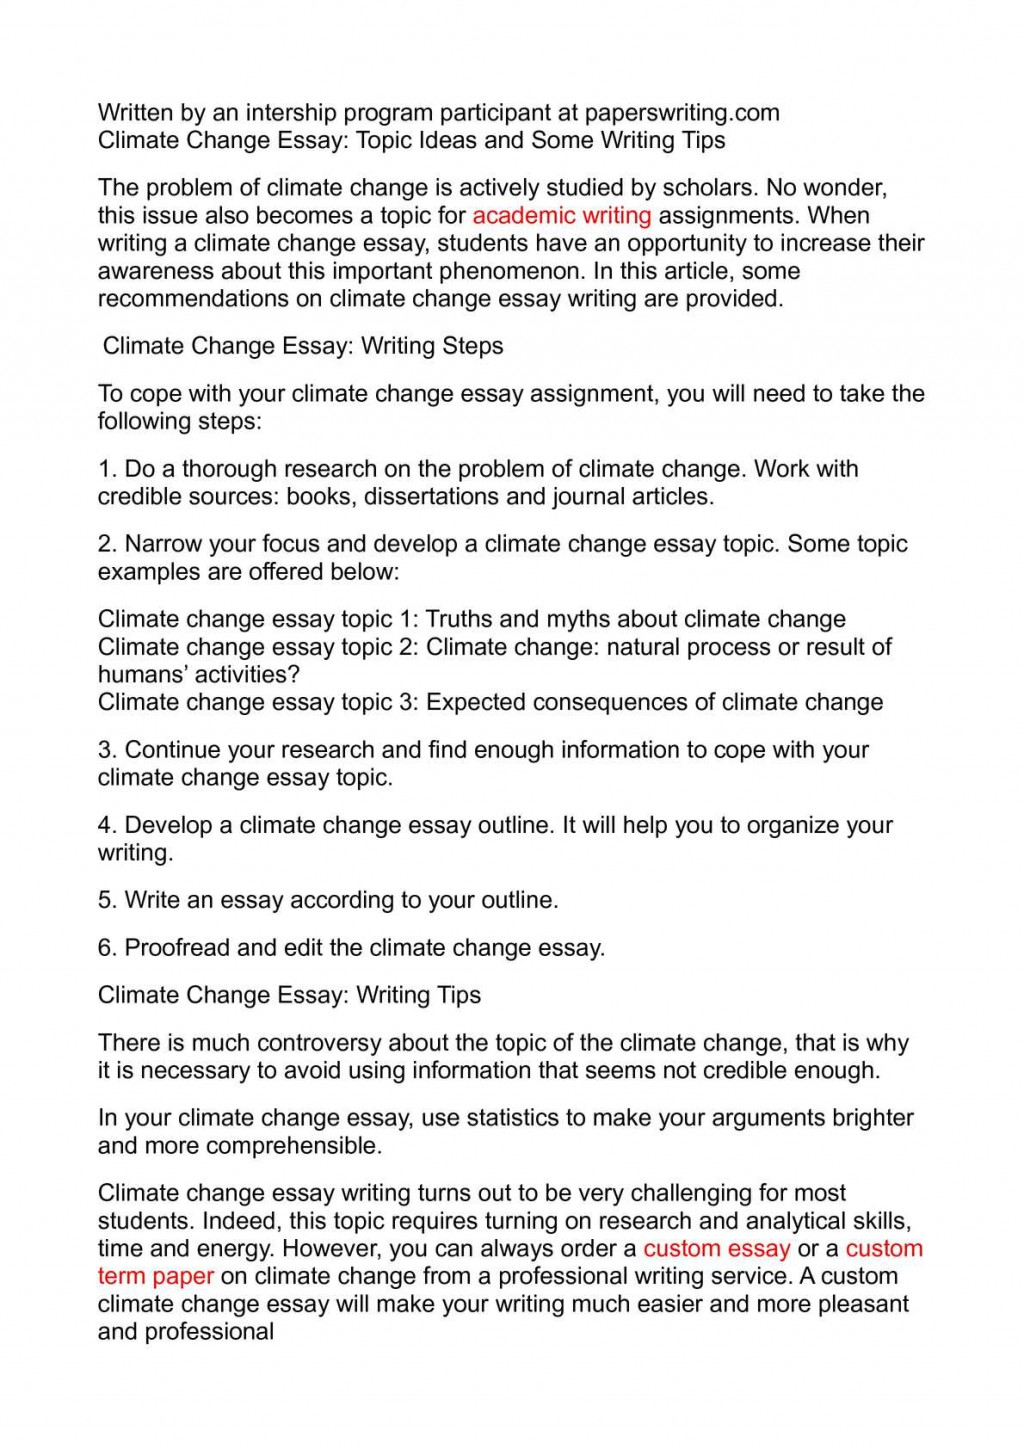 022 Research Paper Academic Ideas Climate Change Essay